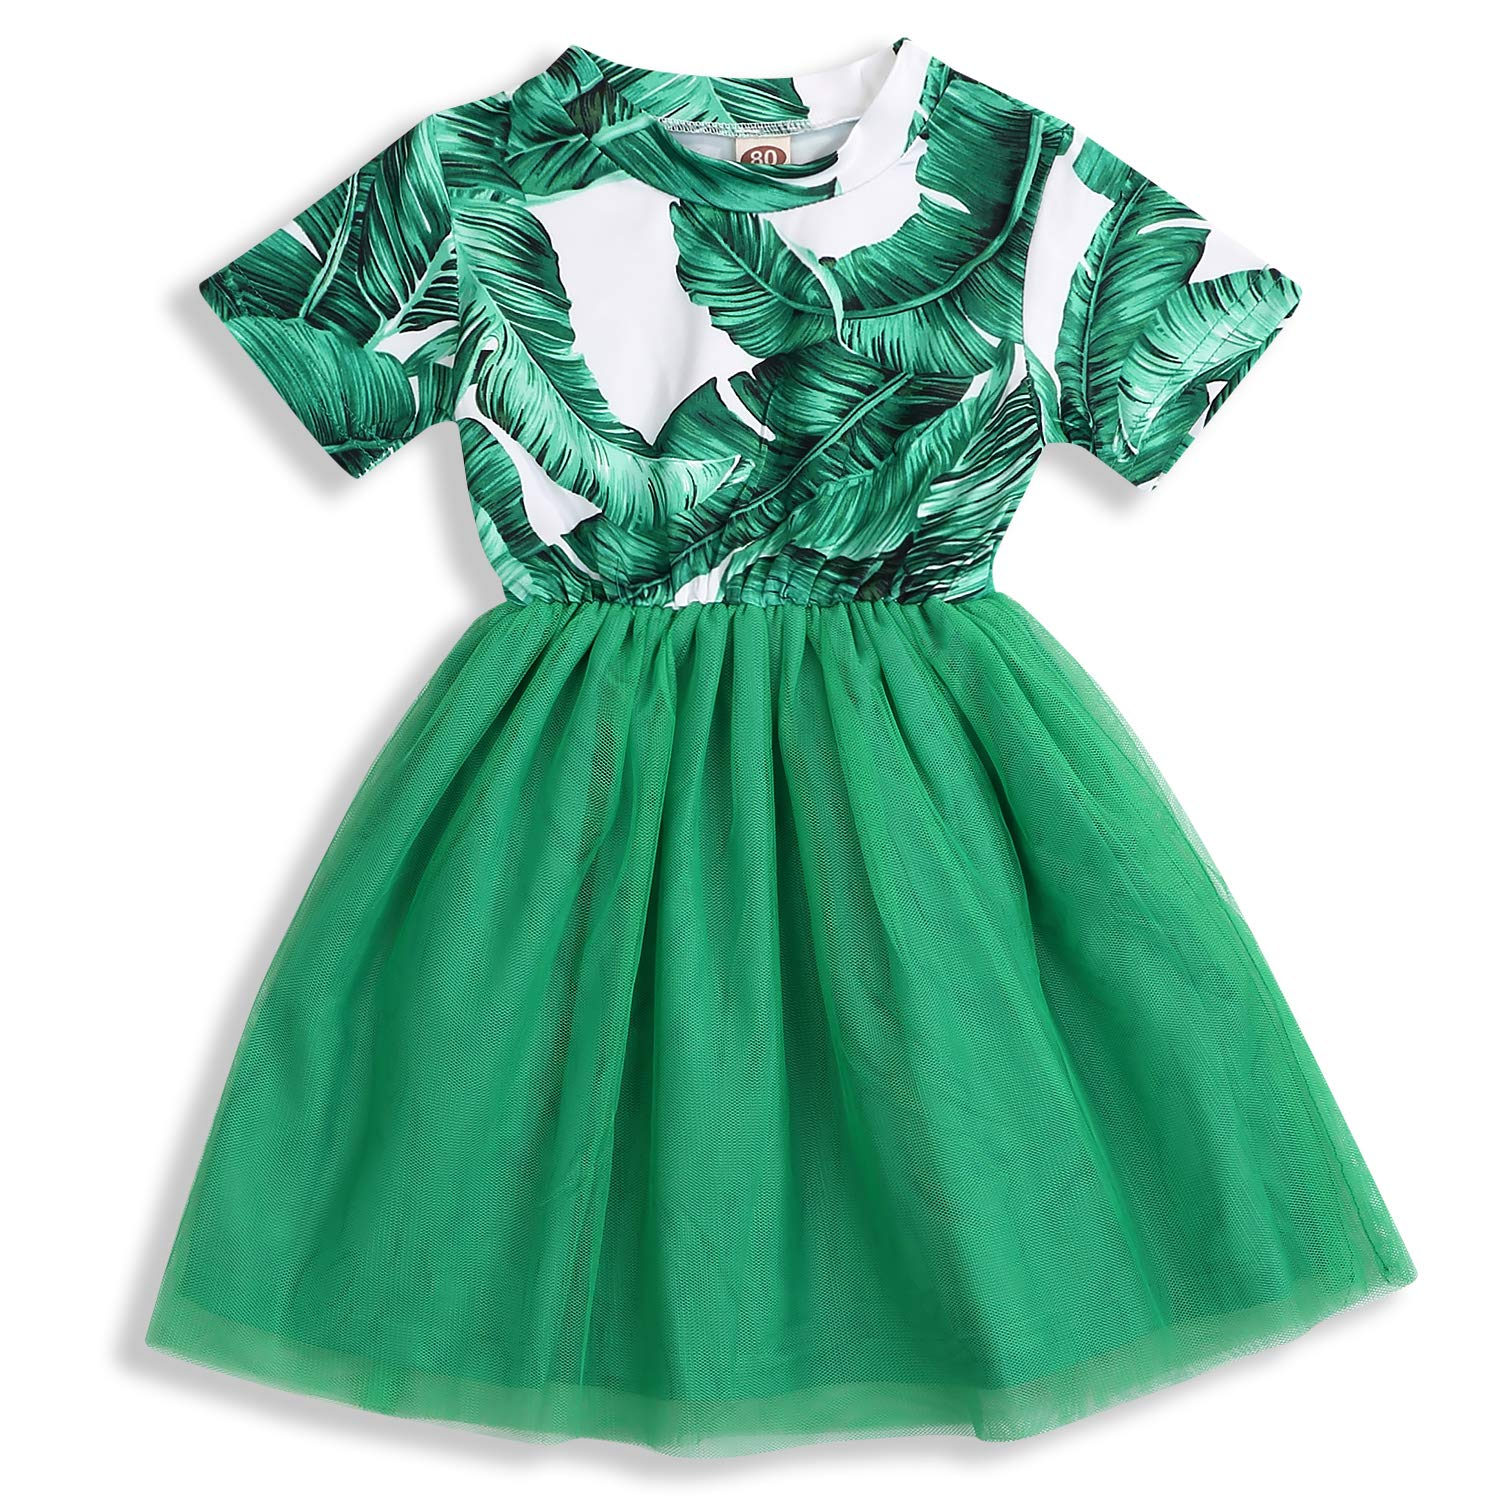 Toddler Baby Girl Dress Leaf Ruffle Sleeve Skirt A-line Princess Casual Summer Clothes Outfits